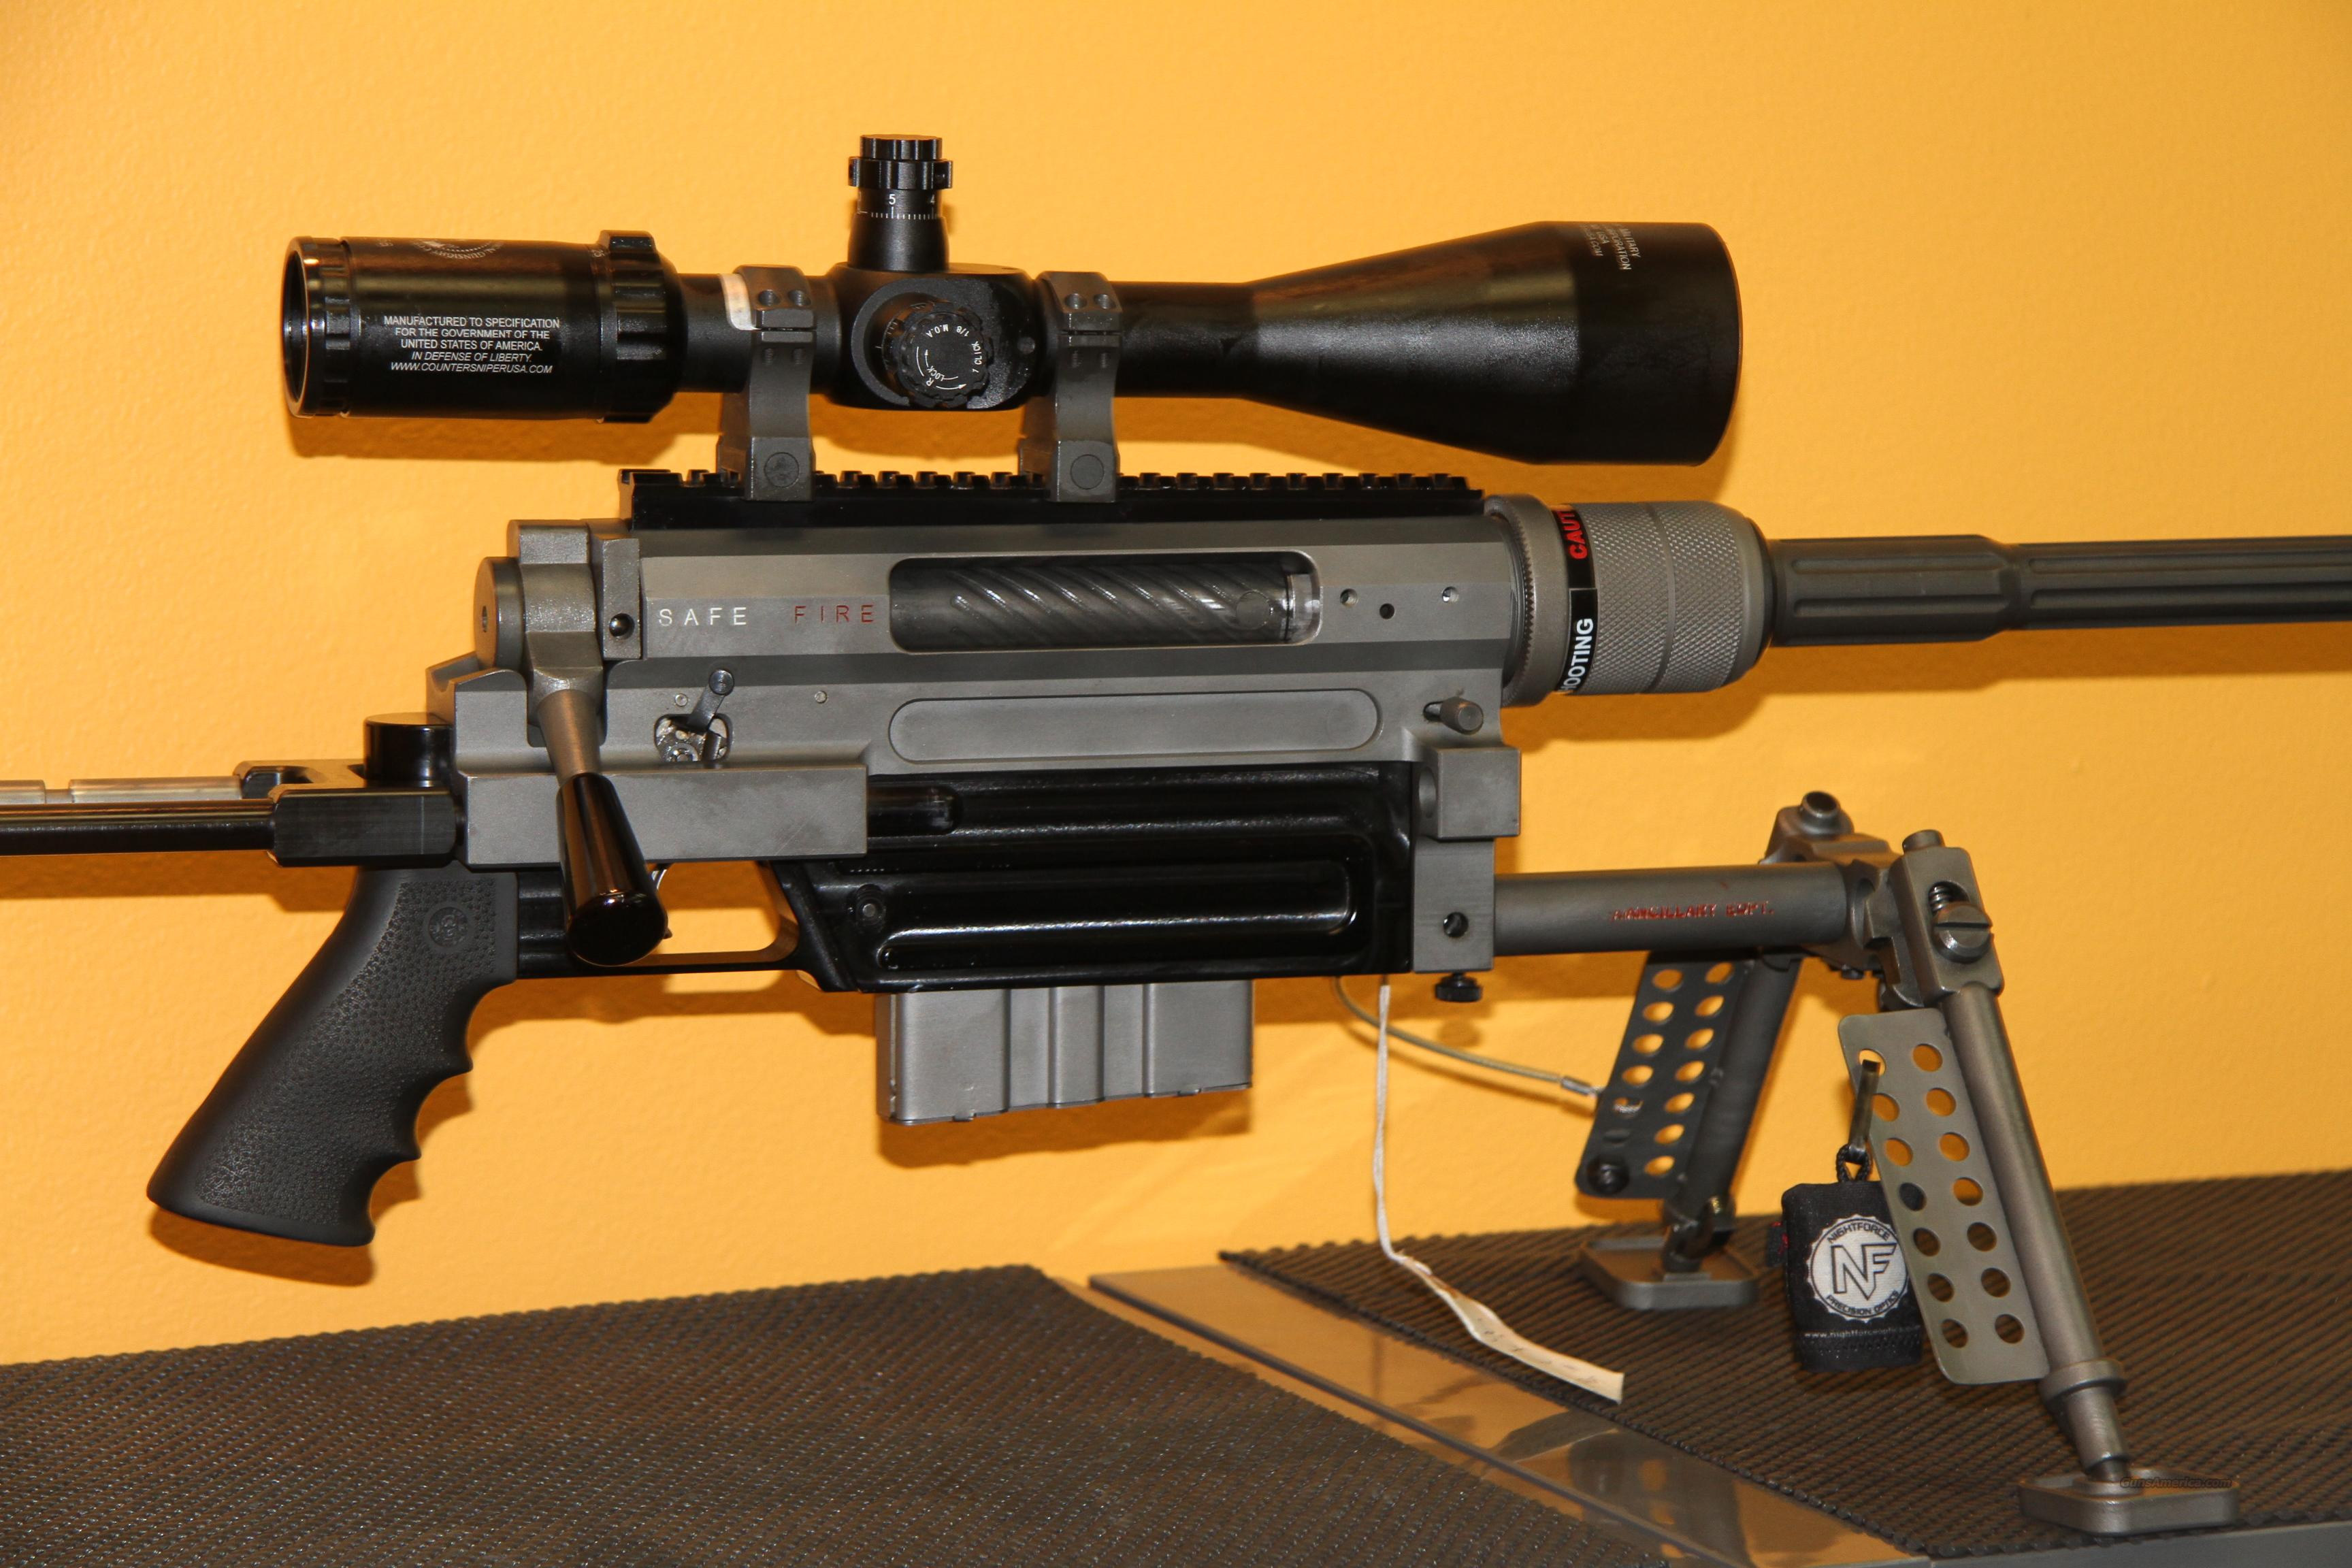 edm arms windrunner - photo #18